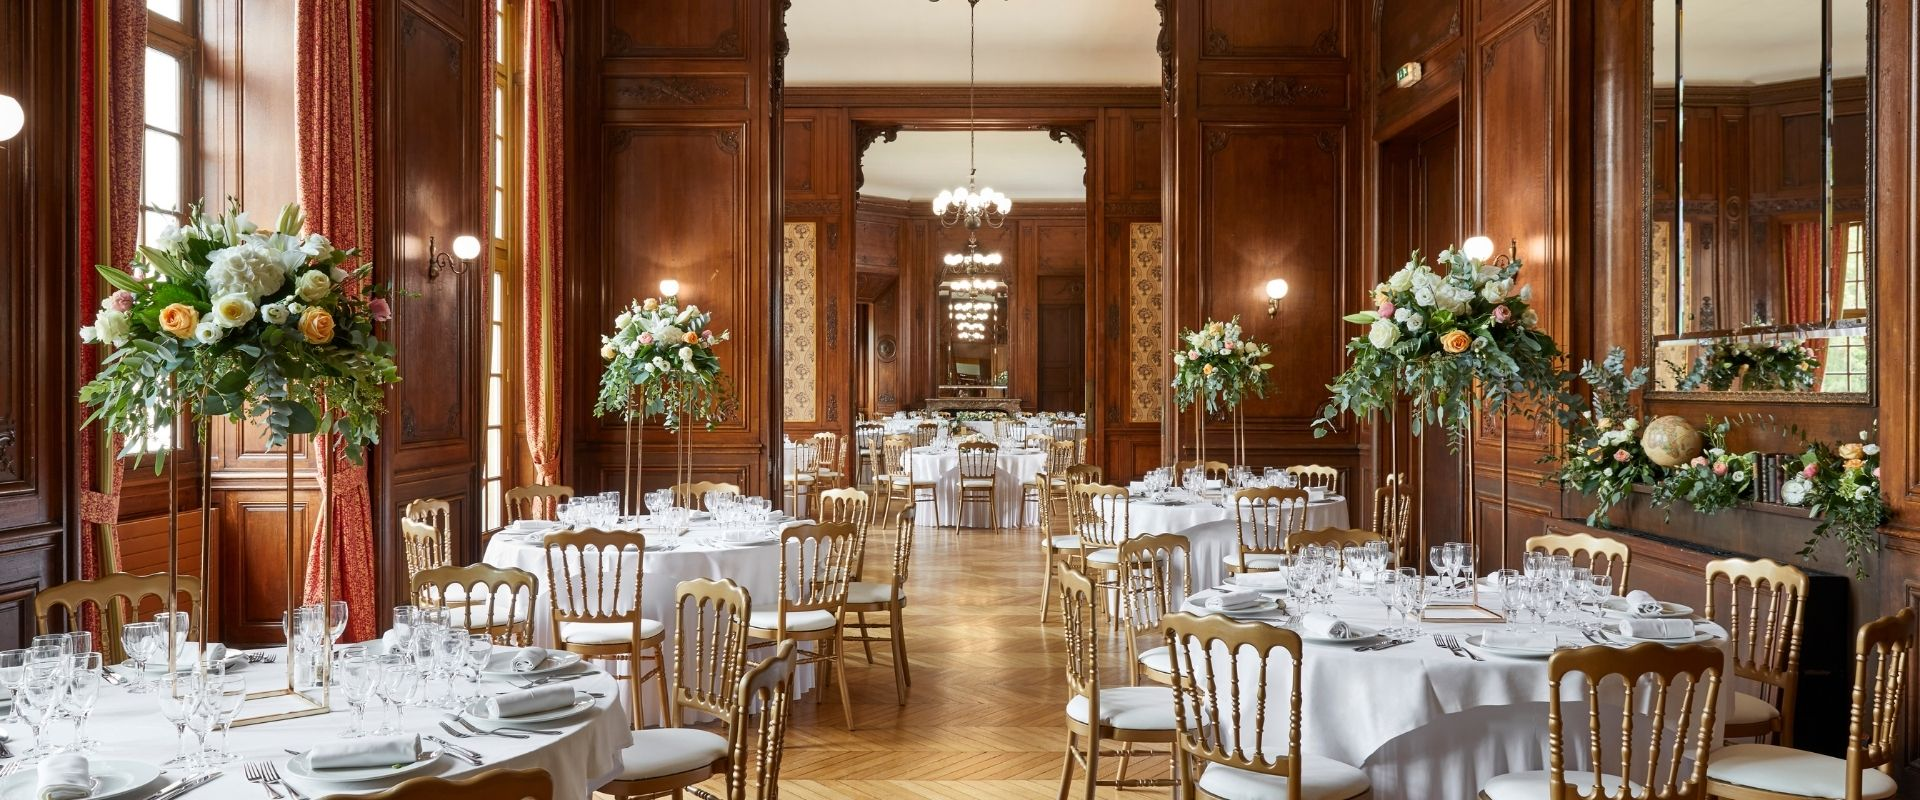 Wedding wooden panel Dining room